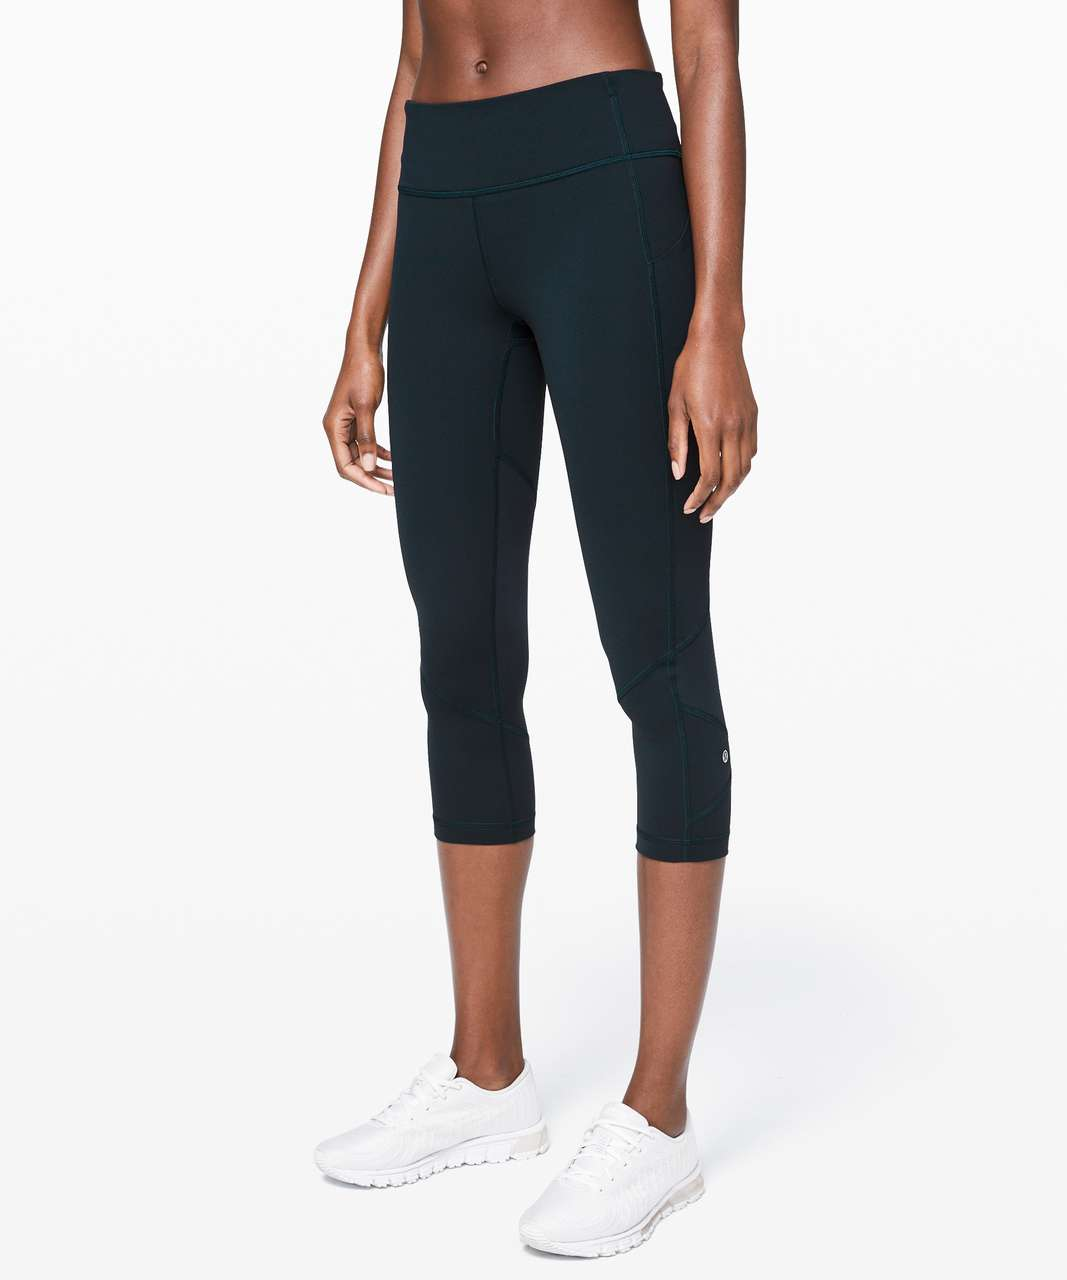 "Lululemon Pace Rival Crop *22"" - Nocturnal Teal"